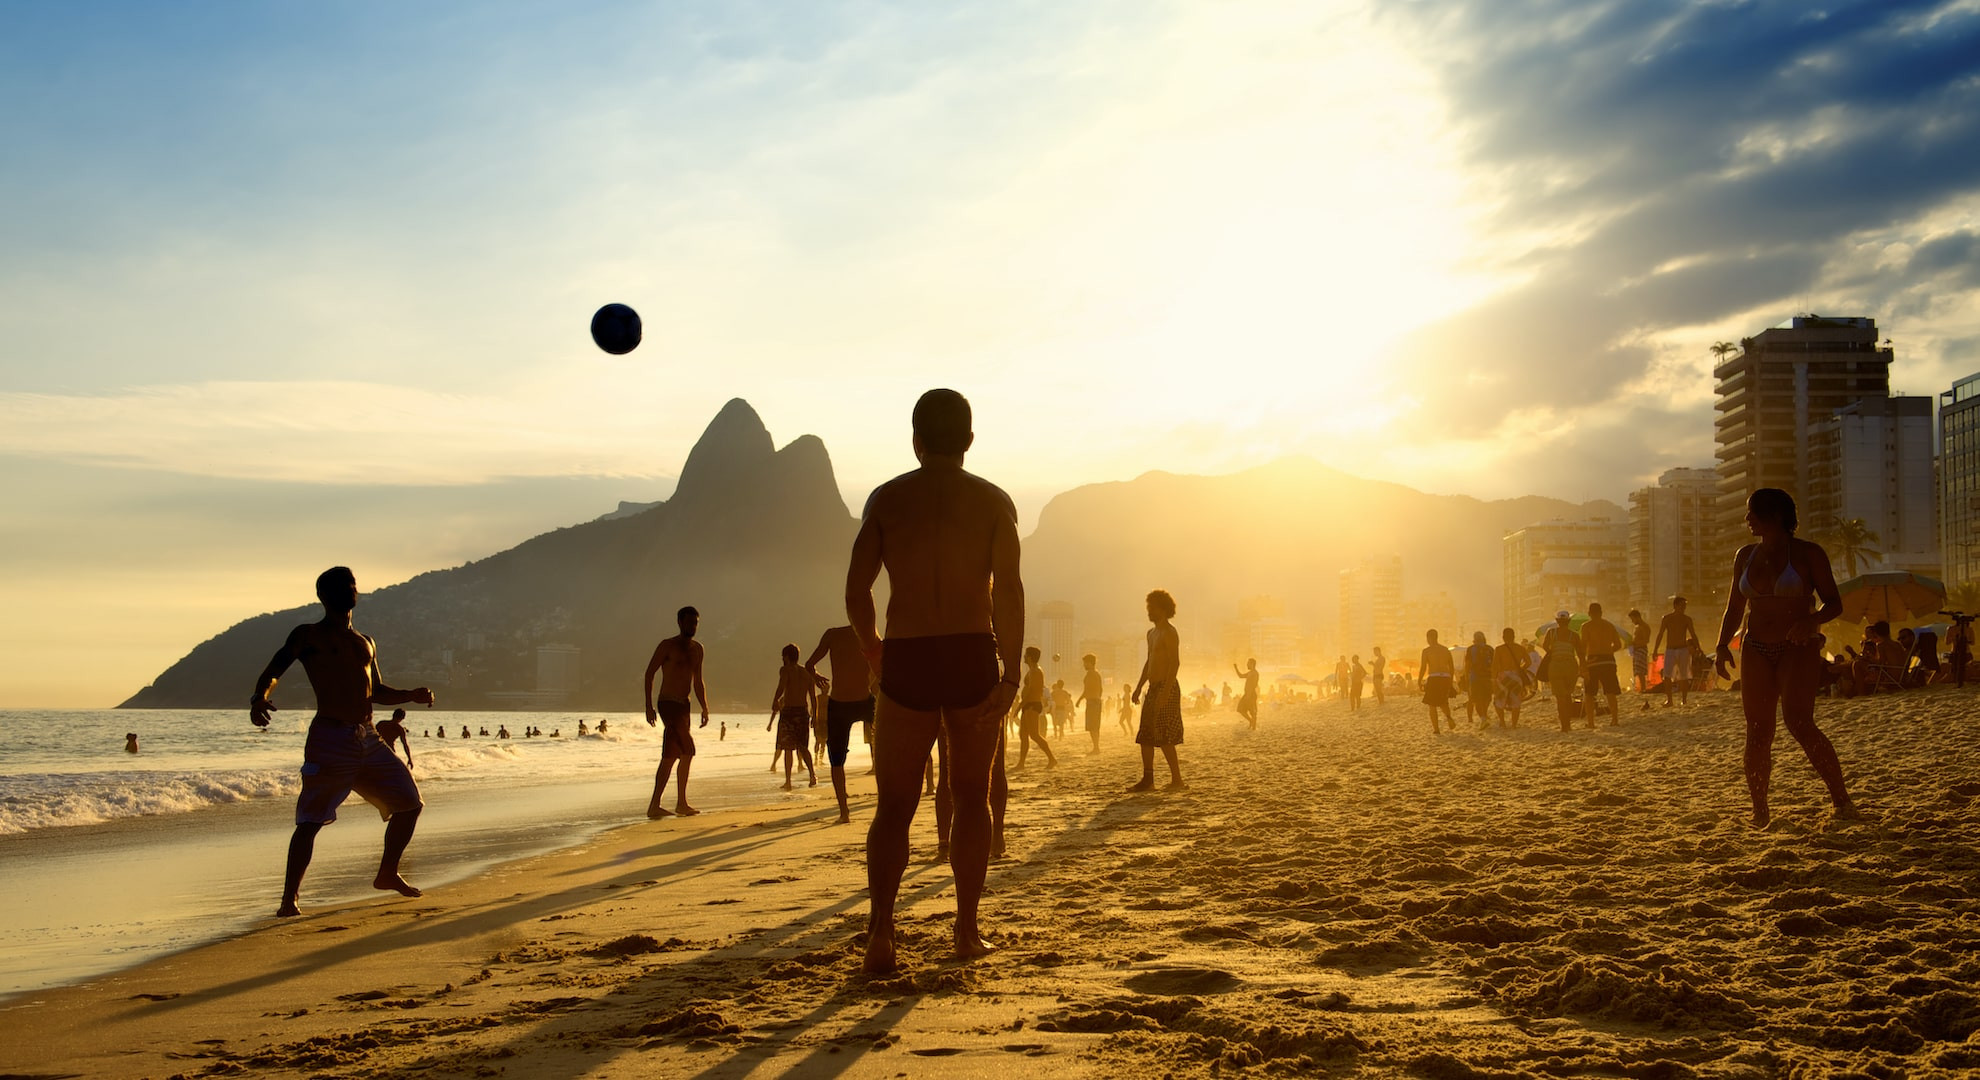 Beach football in Rio